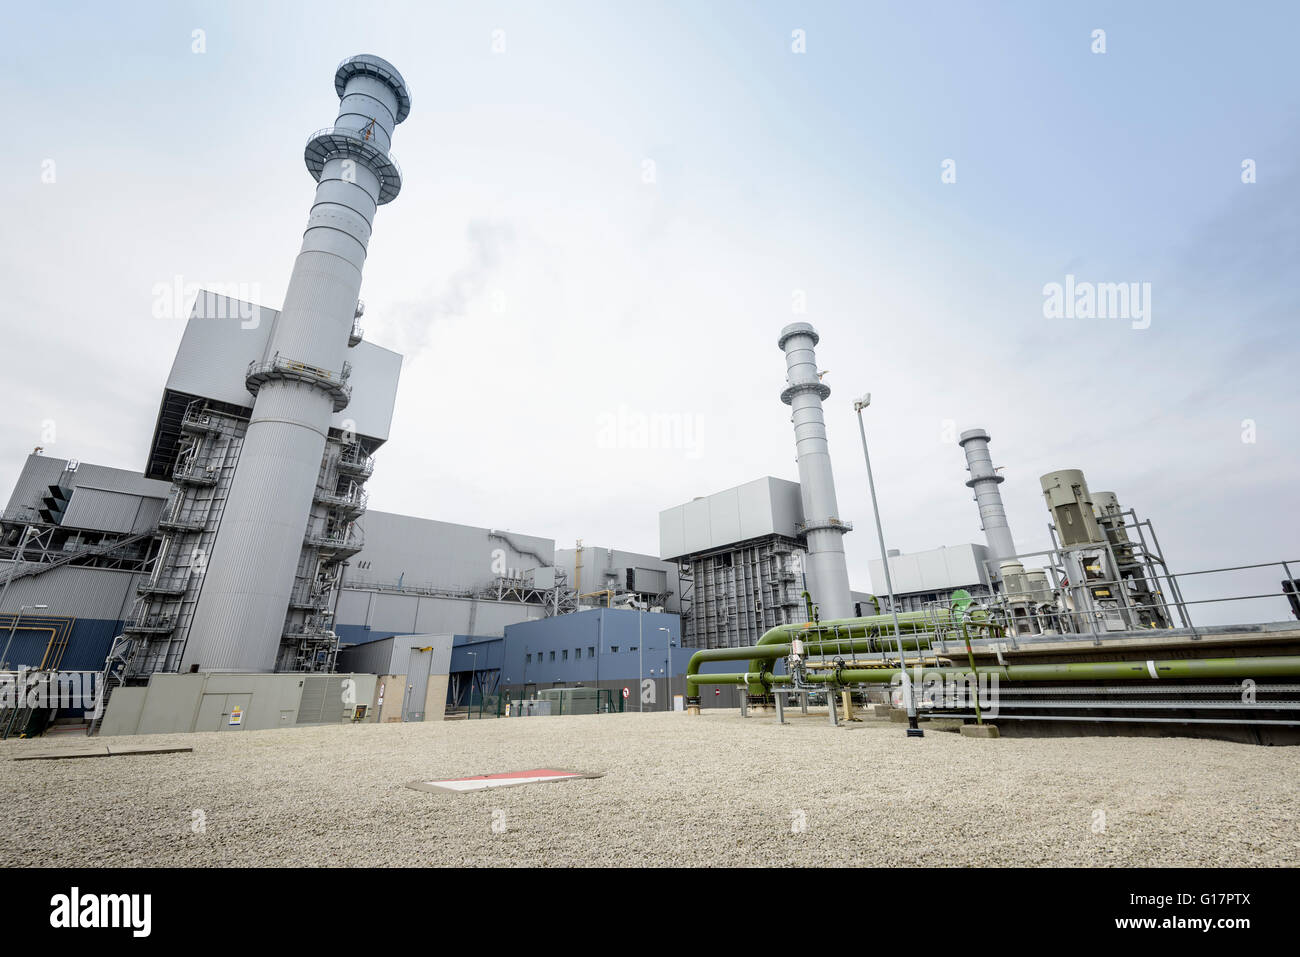 View of gas-fired power station, low angle view - Stock Image